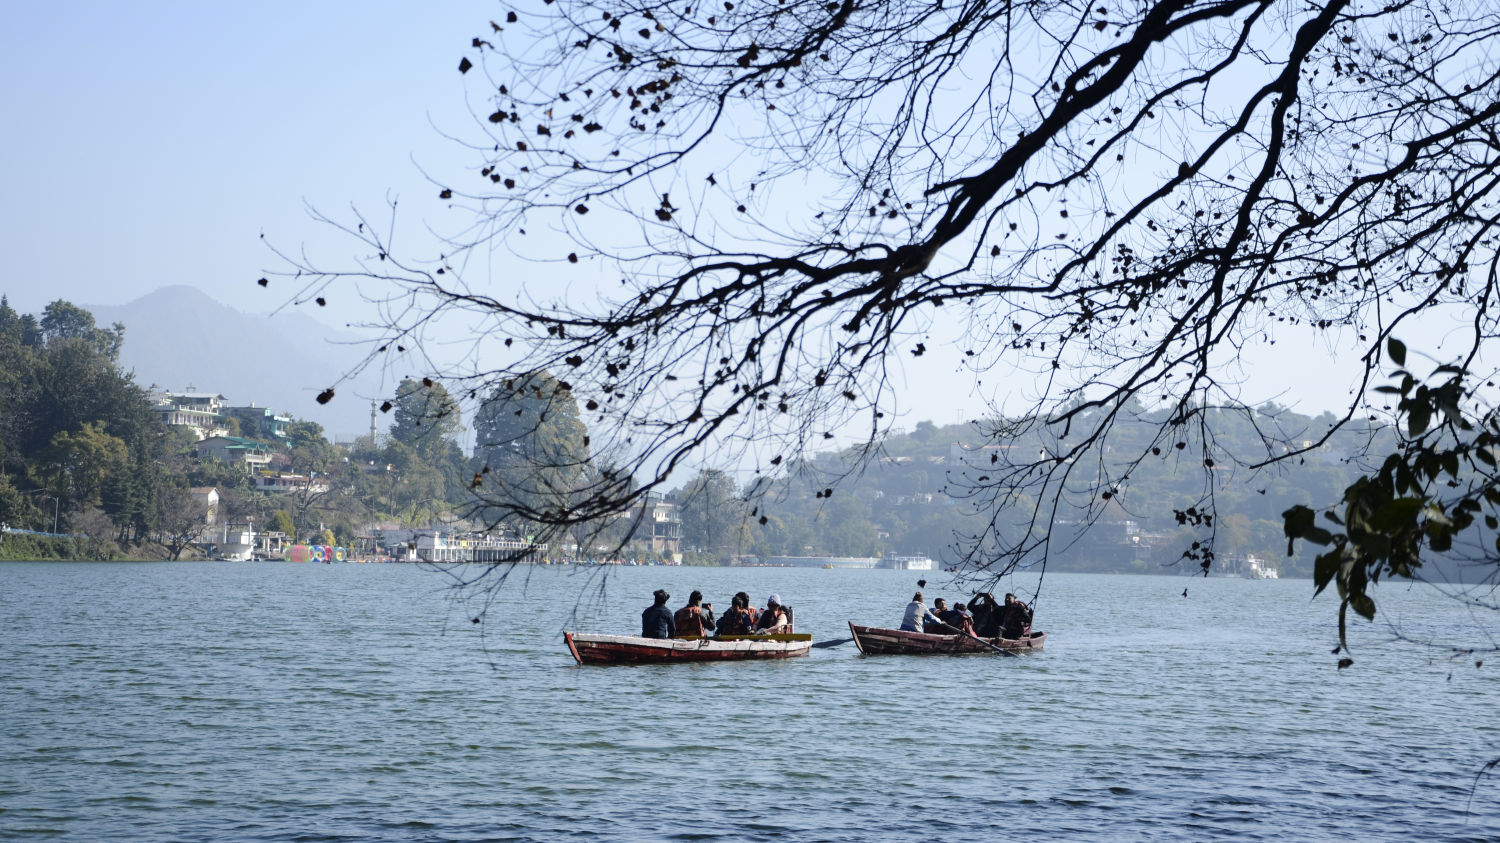 Boating in Bhimtal Lake, Resort near Bhimtal Lake, Rosefinch Sarovar Portico, Bhimtal-9